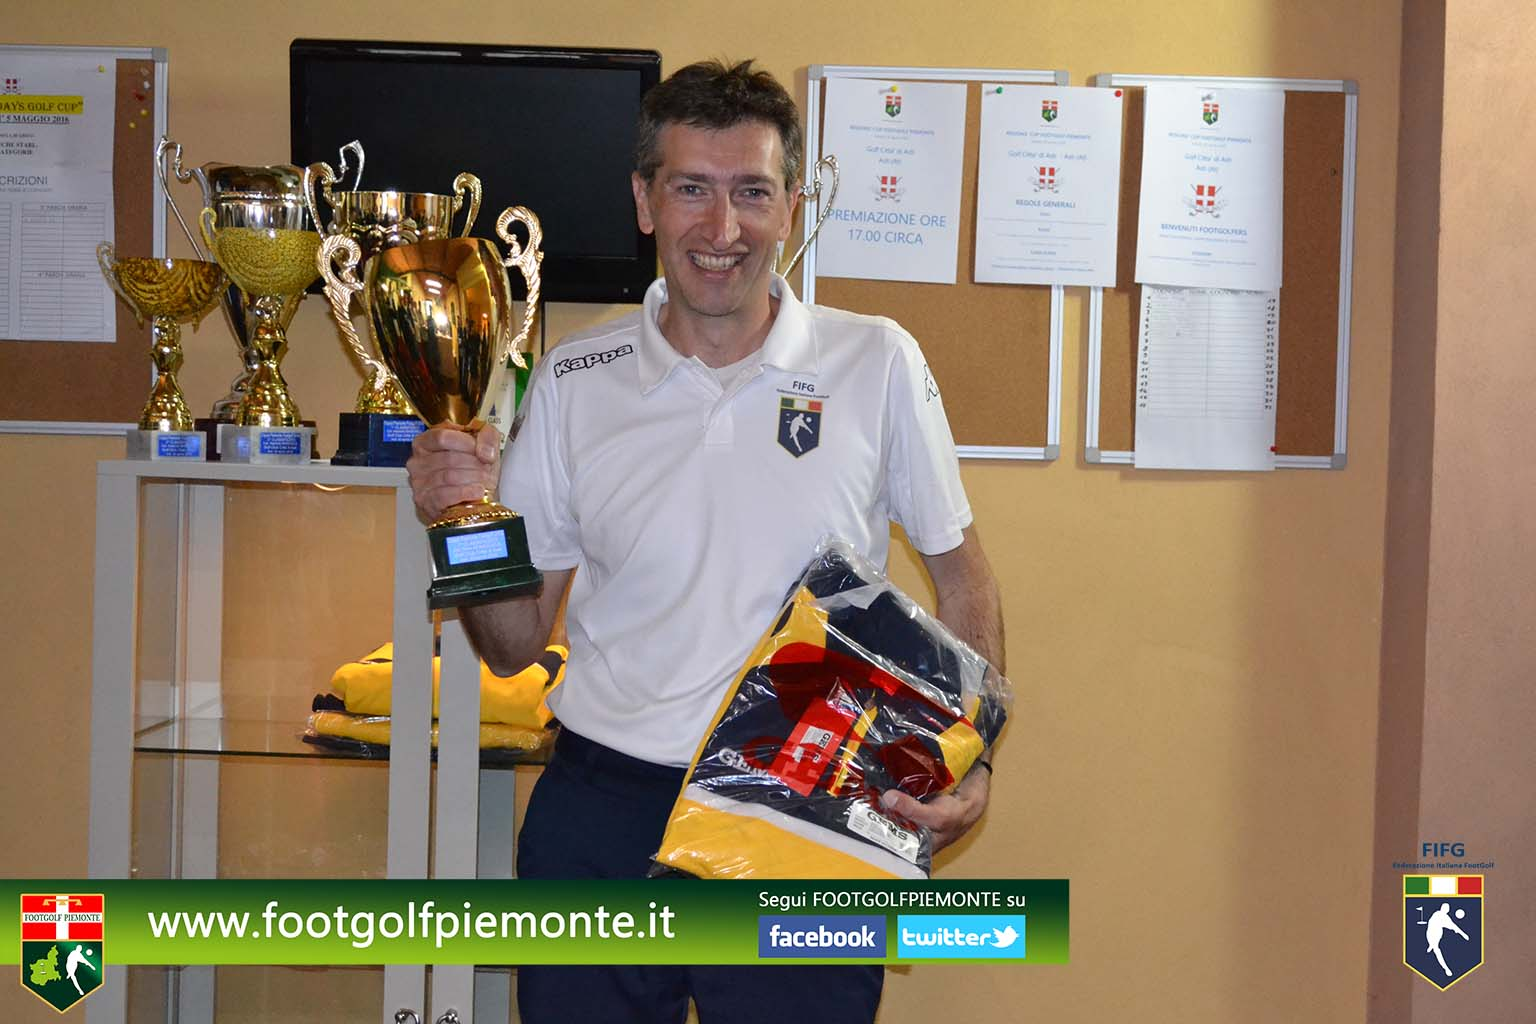 FOTO 9 Regions' Cup Footgolf Piemonte 2016 Golf Città di Asti (At) 30apr16-120